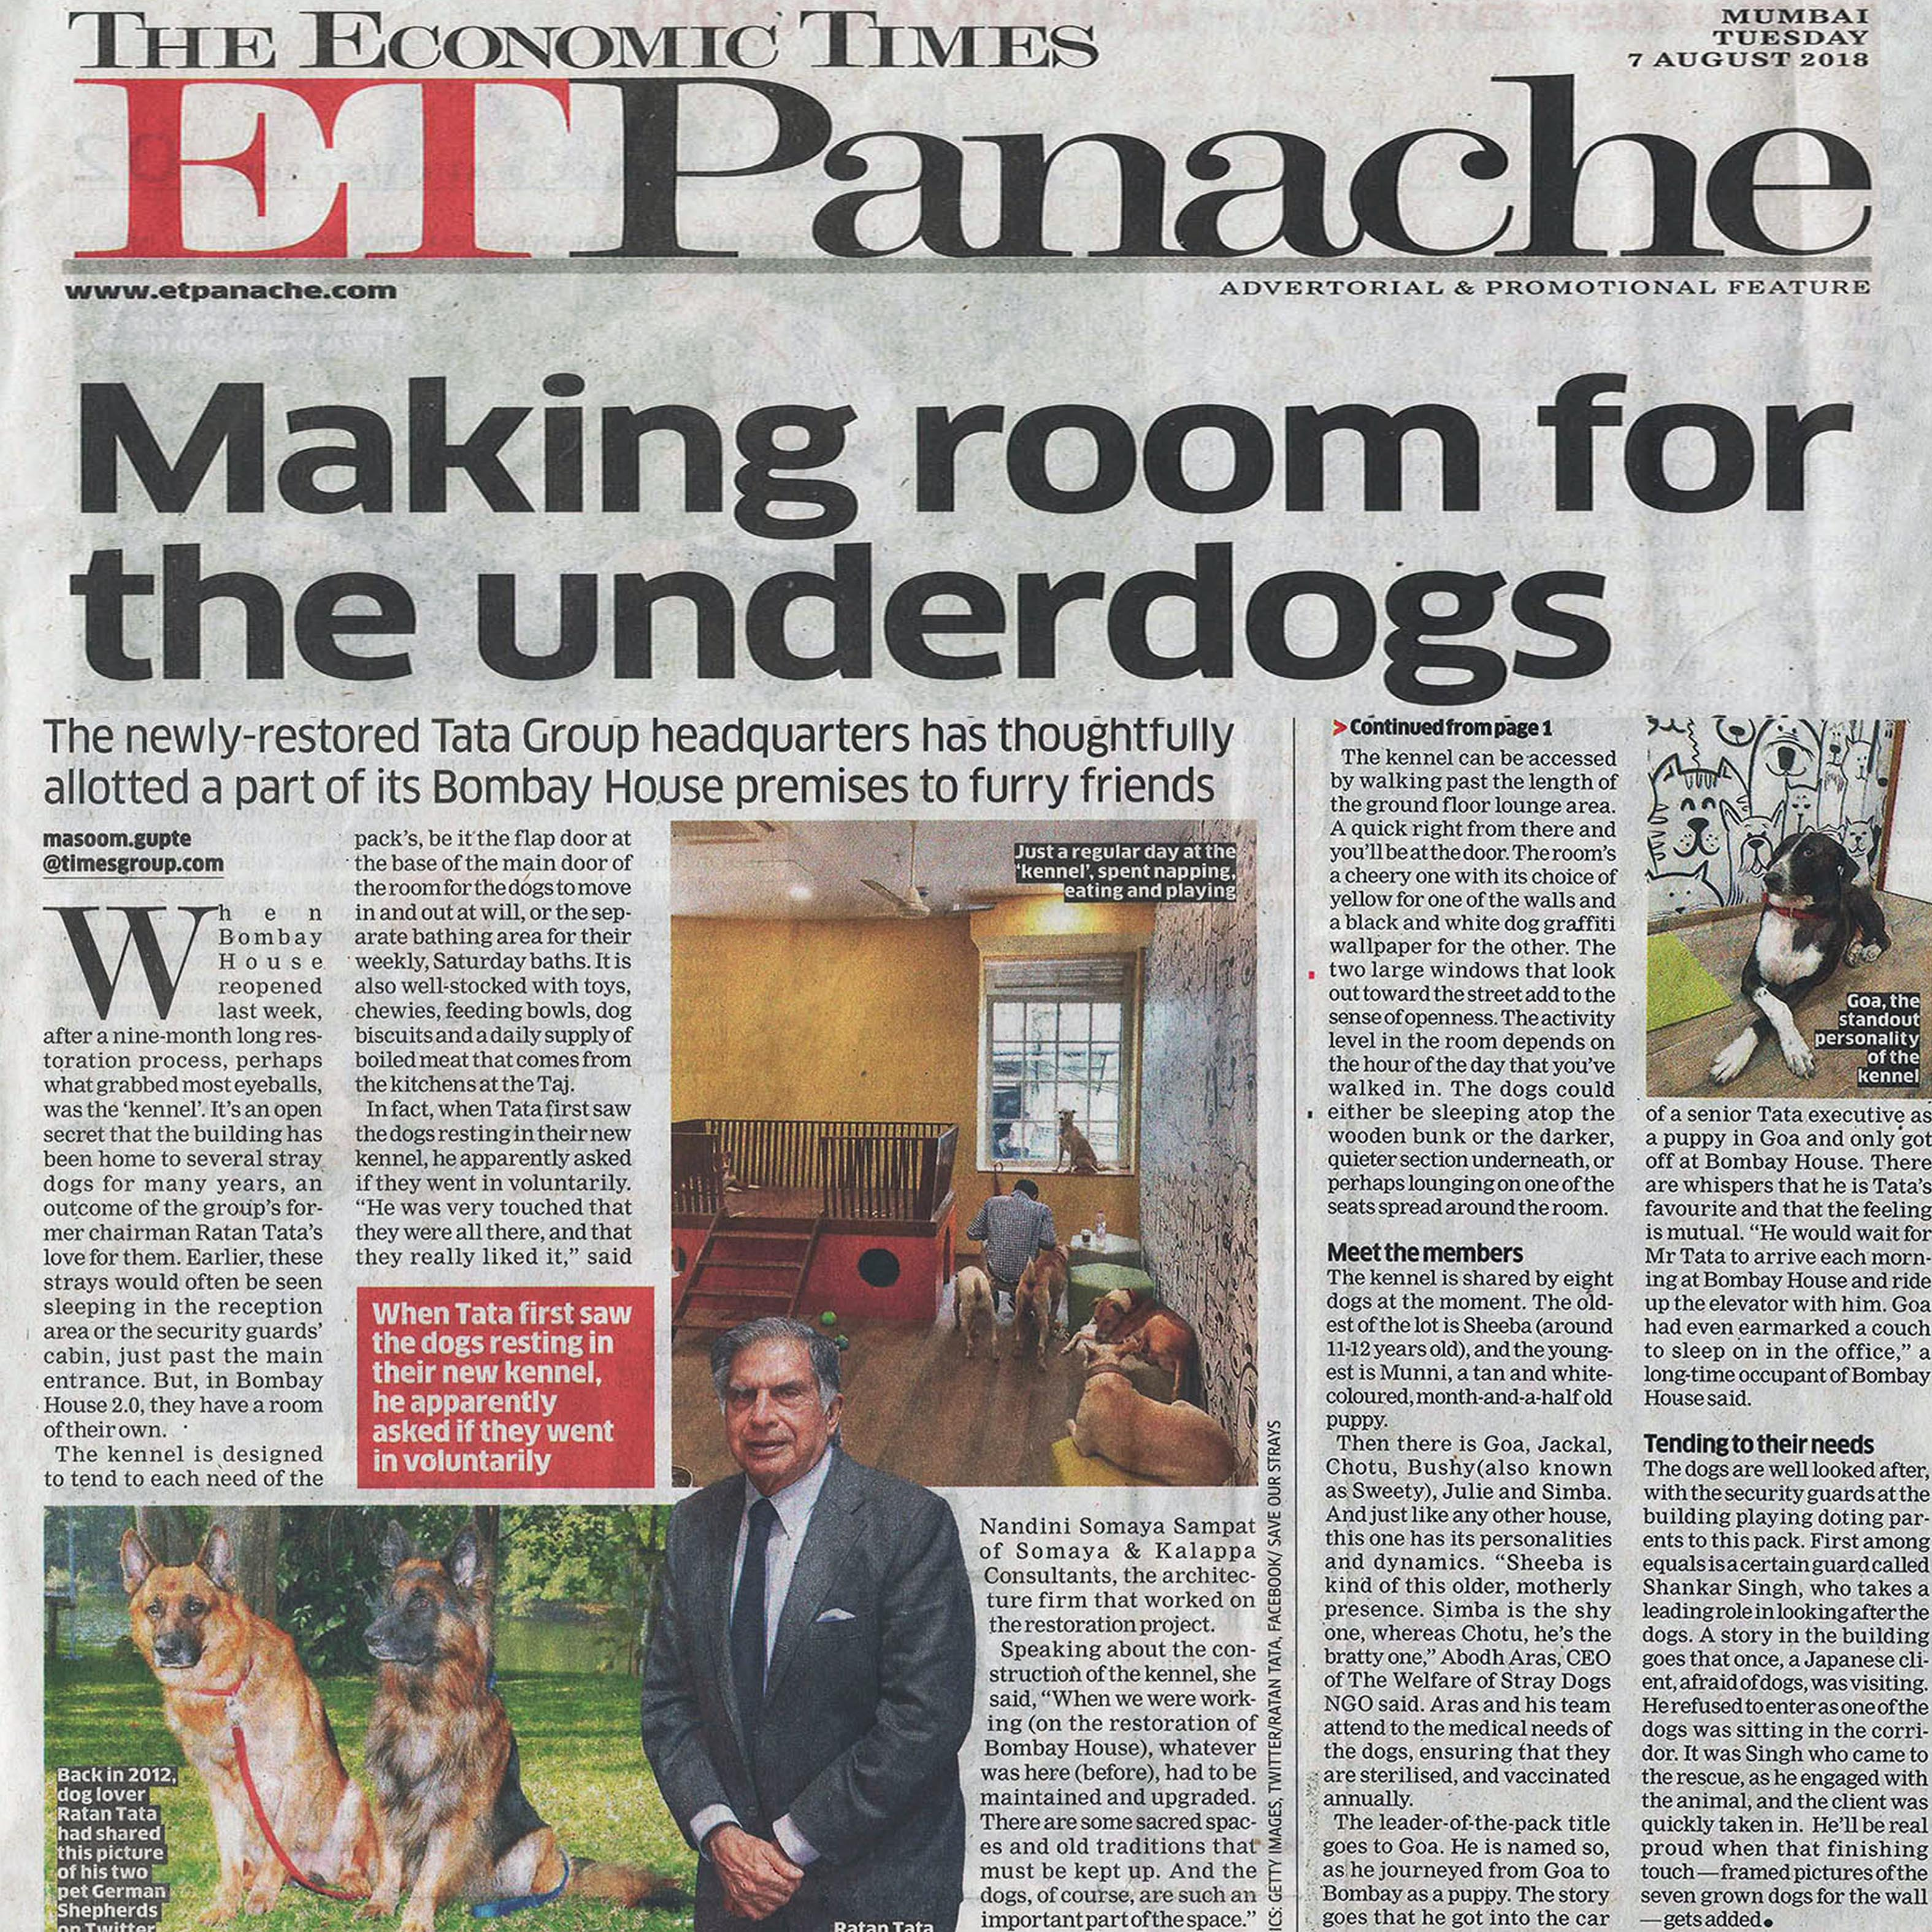 Making room for the Underdogs - The Economic Times - Aug 2018